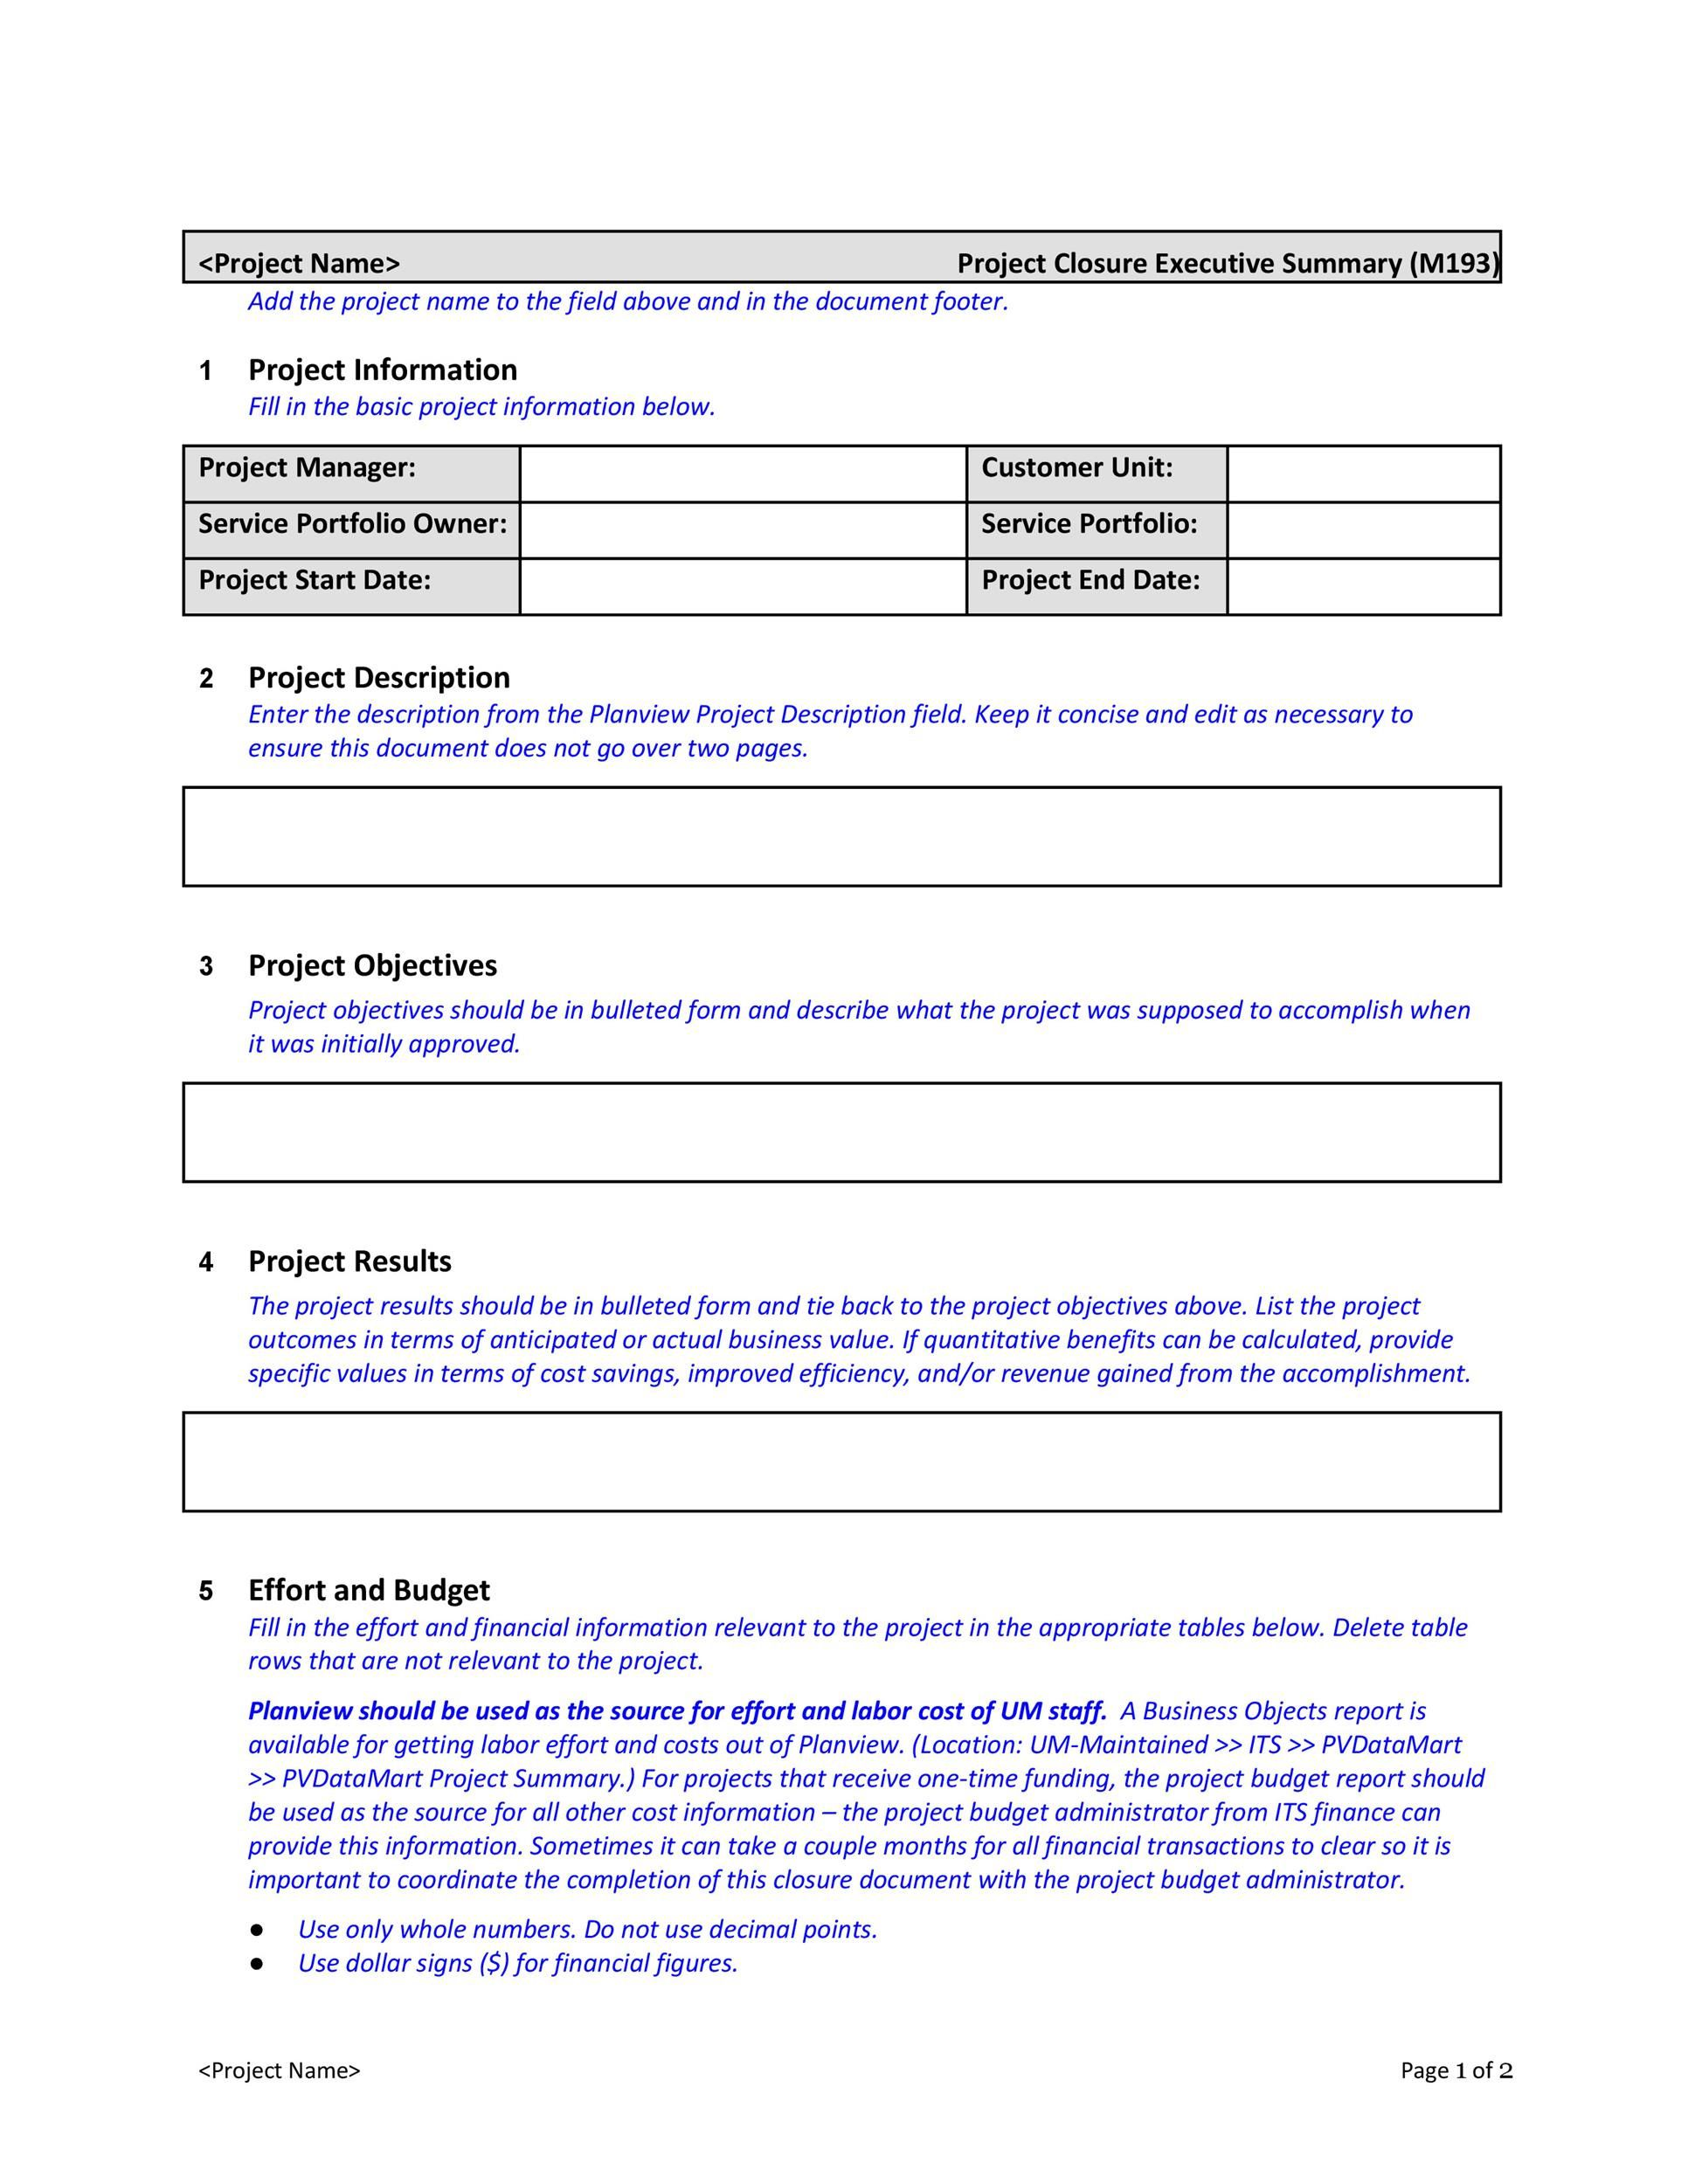 006 Awesome Executive Summary Word Template Free Download High Resolution Full